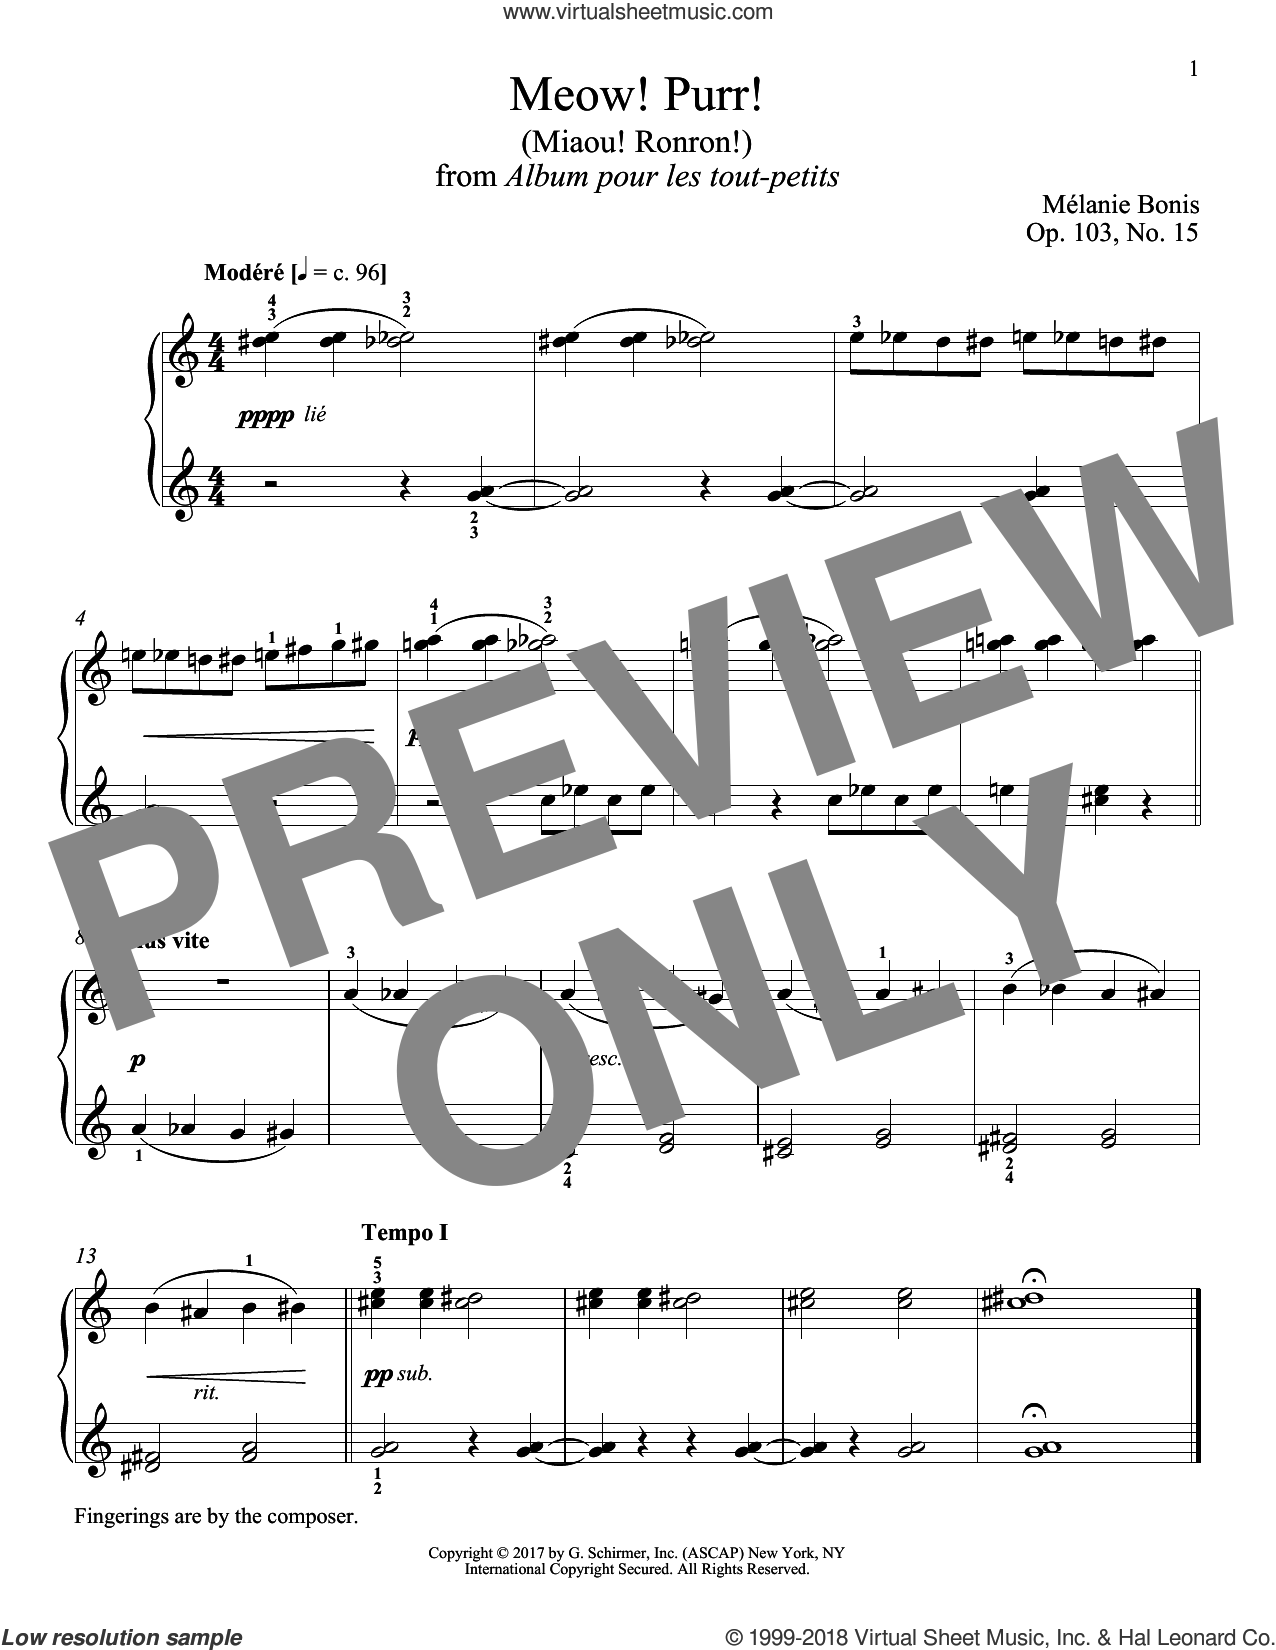 Meow! Purr! (Miaou! Ronron!) sheet music for piano solo by Melanie Bonis and Richard Walters, classical score, intermediate skill level